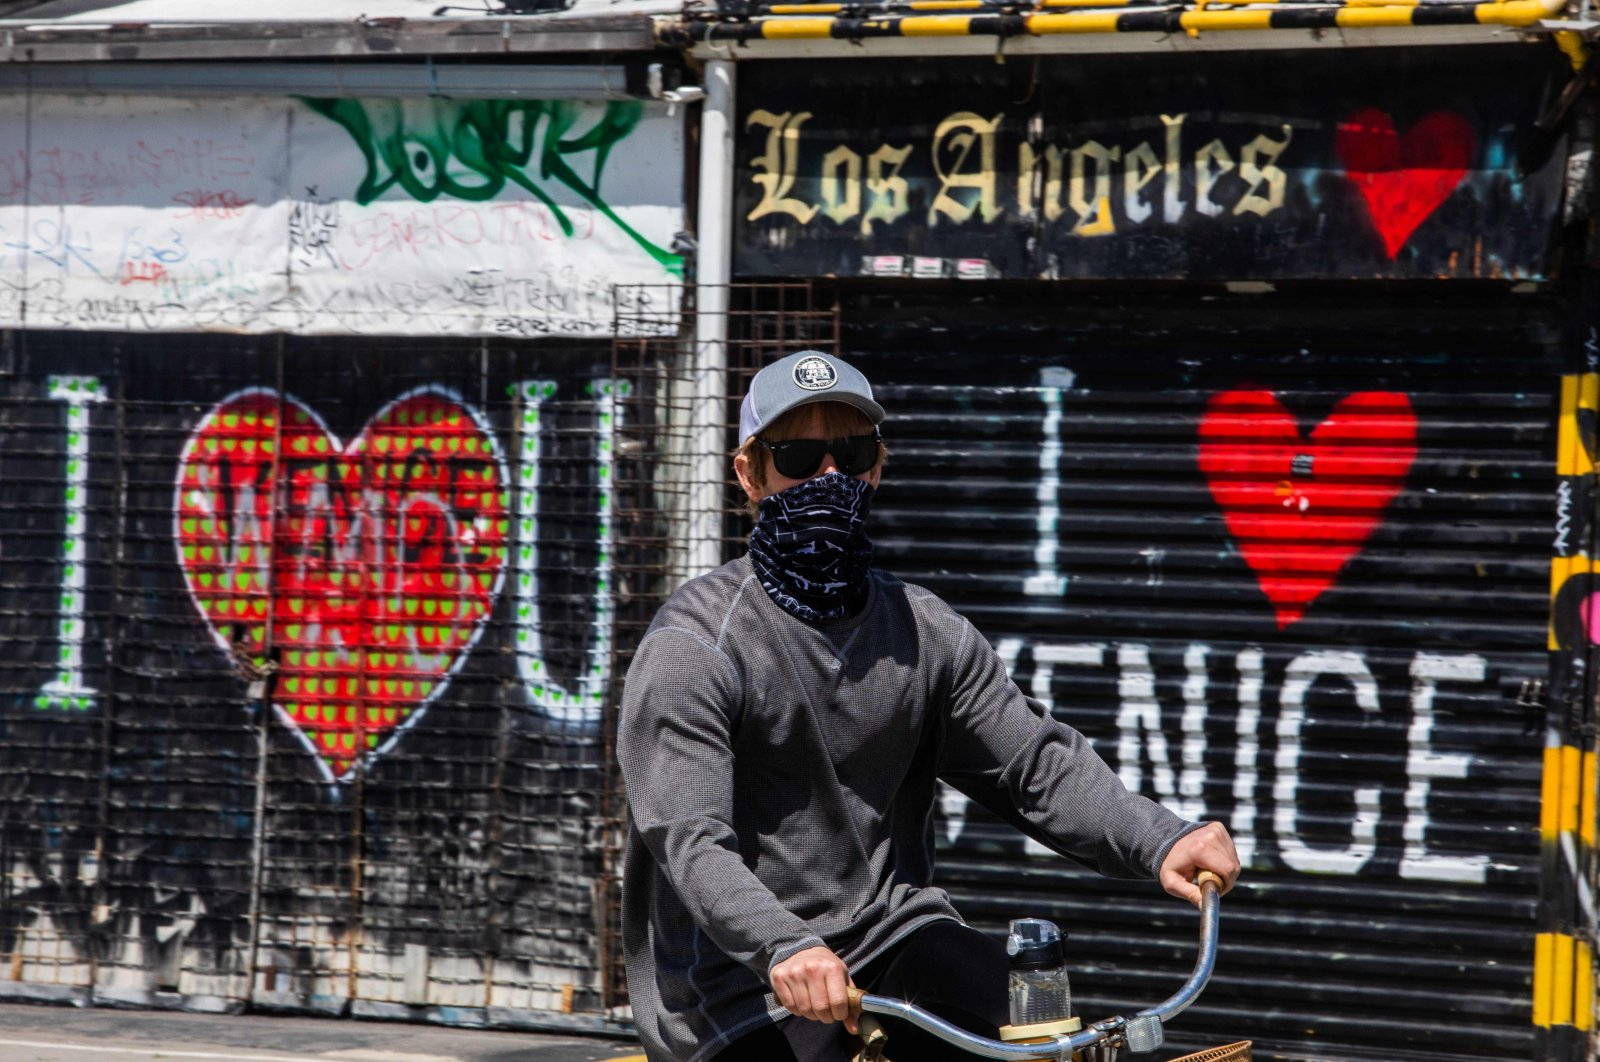 A man wearing a scarf as a face mask rides his bike during the coronavirus pandemic, in Venice Beach, Los Angeles, California, U.S., April 4, 2020. (AFP Photo)